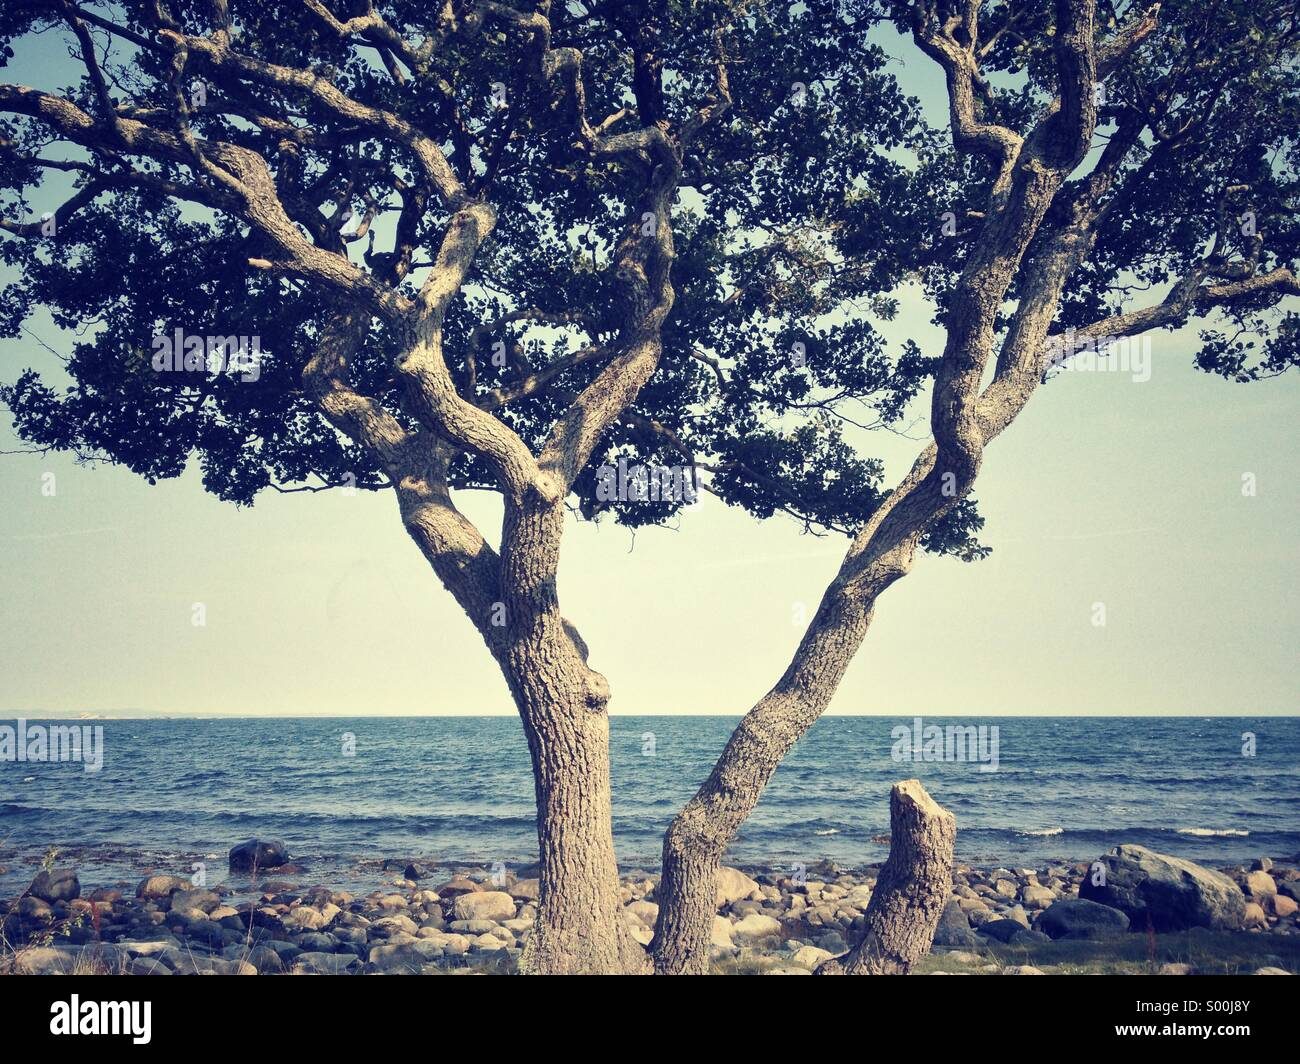 Old, crooked tree on rocky beach, Jomfruland, Norway - Stock Image